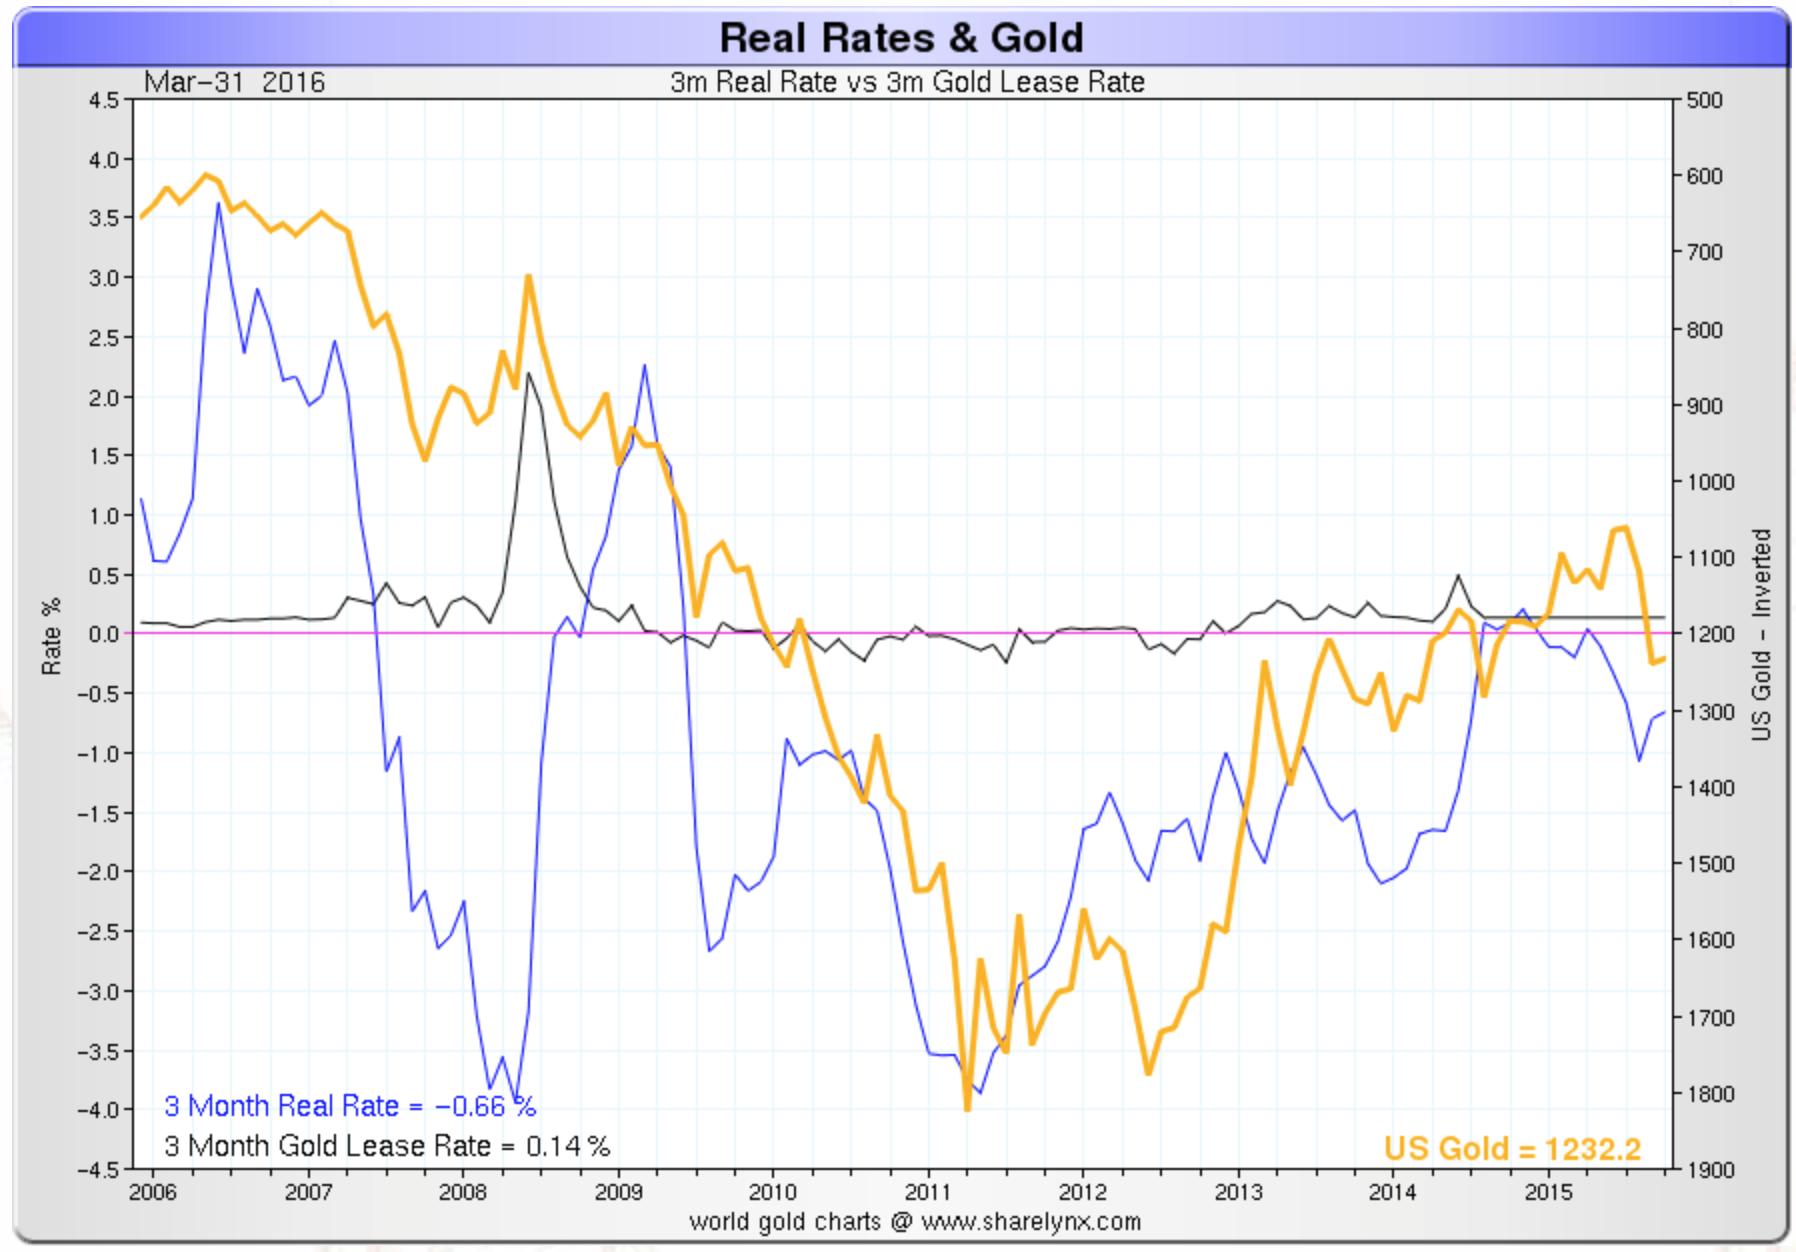 3 motnhs real rates & gold since 2006